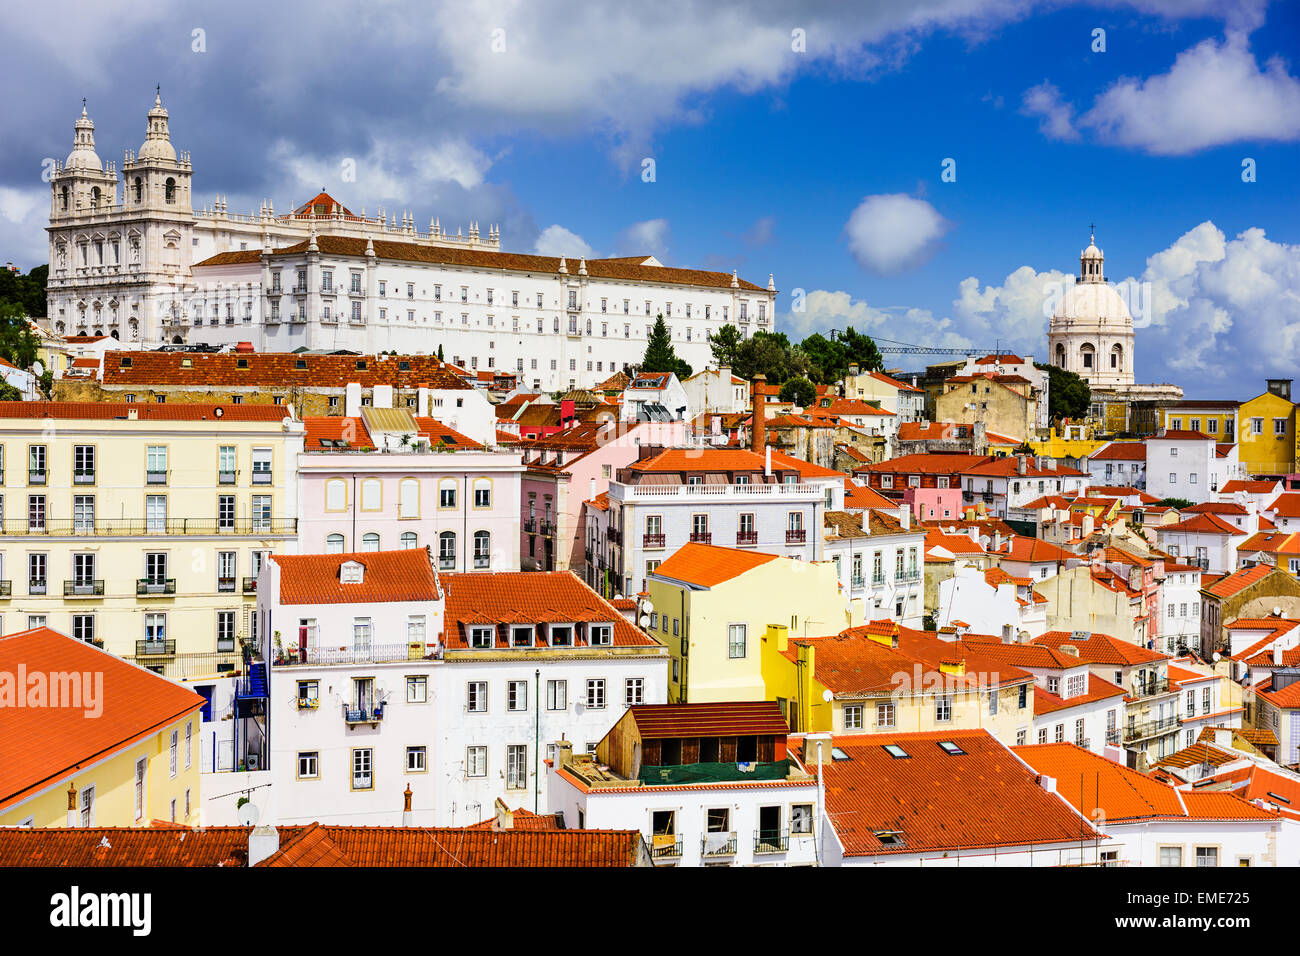 Lisbonne, Portugal dans le quartier d'Alfama. Photo Stock